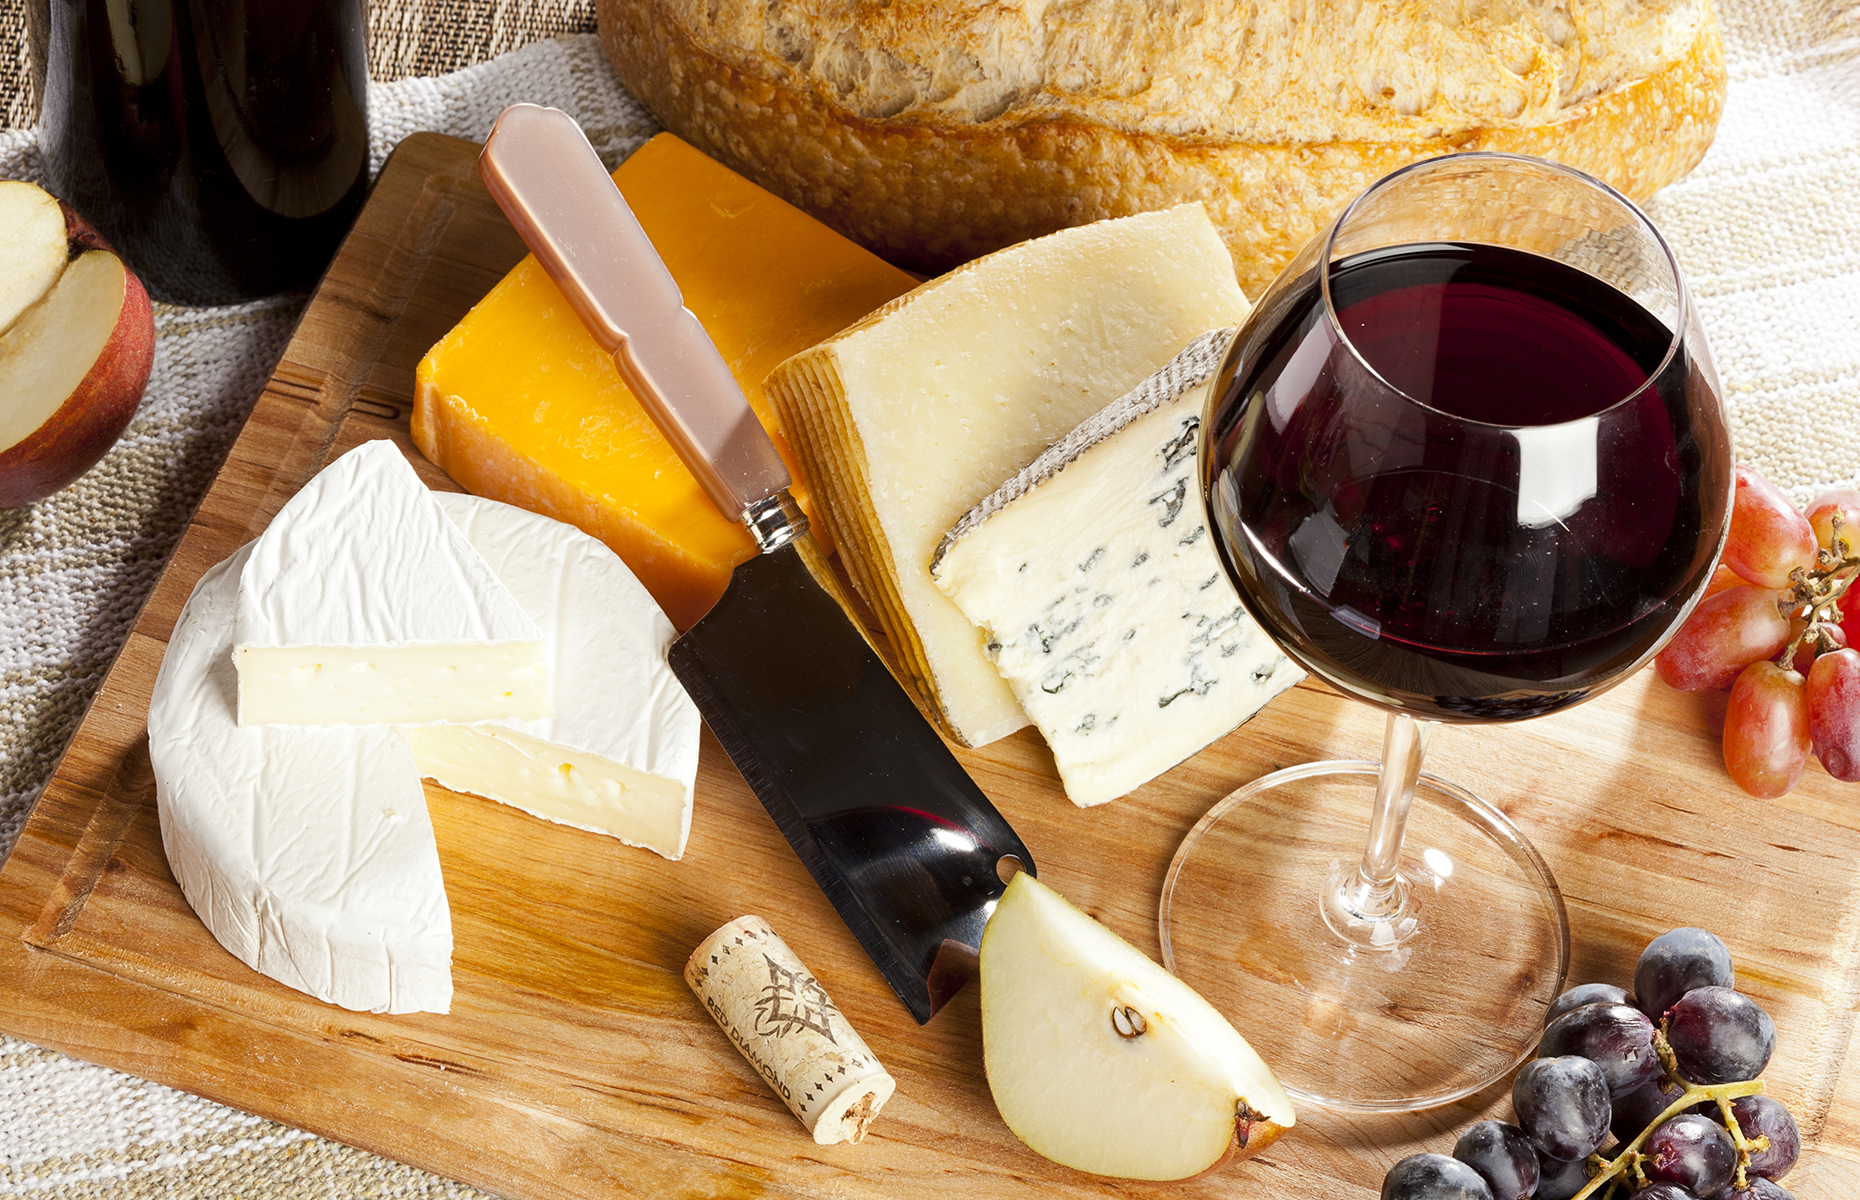 What to drink with your cheeseboard